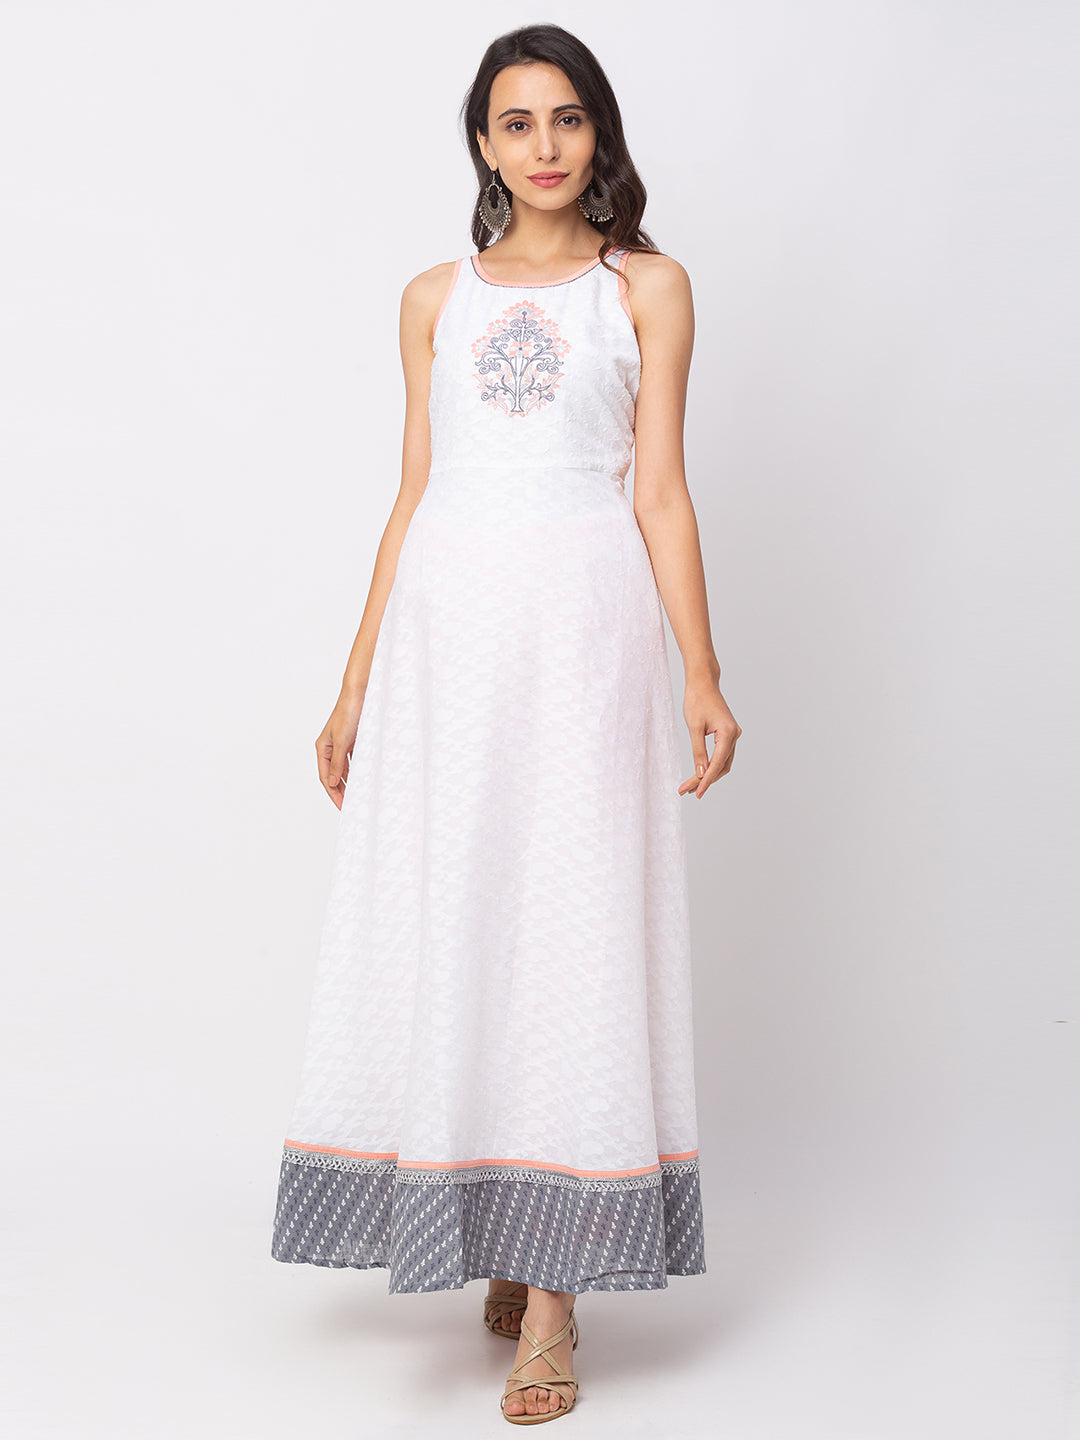 Globus White Printed Dress-1